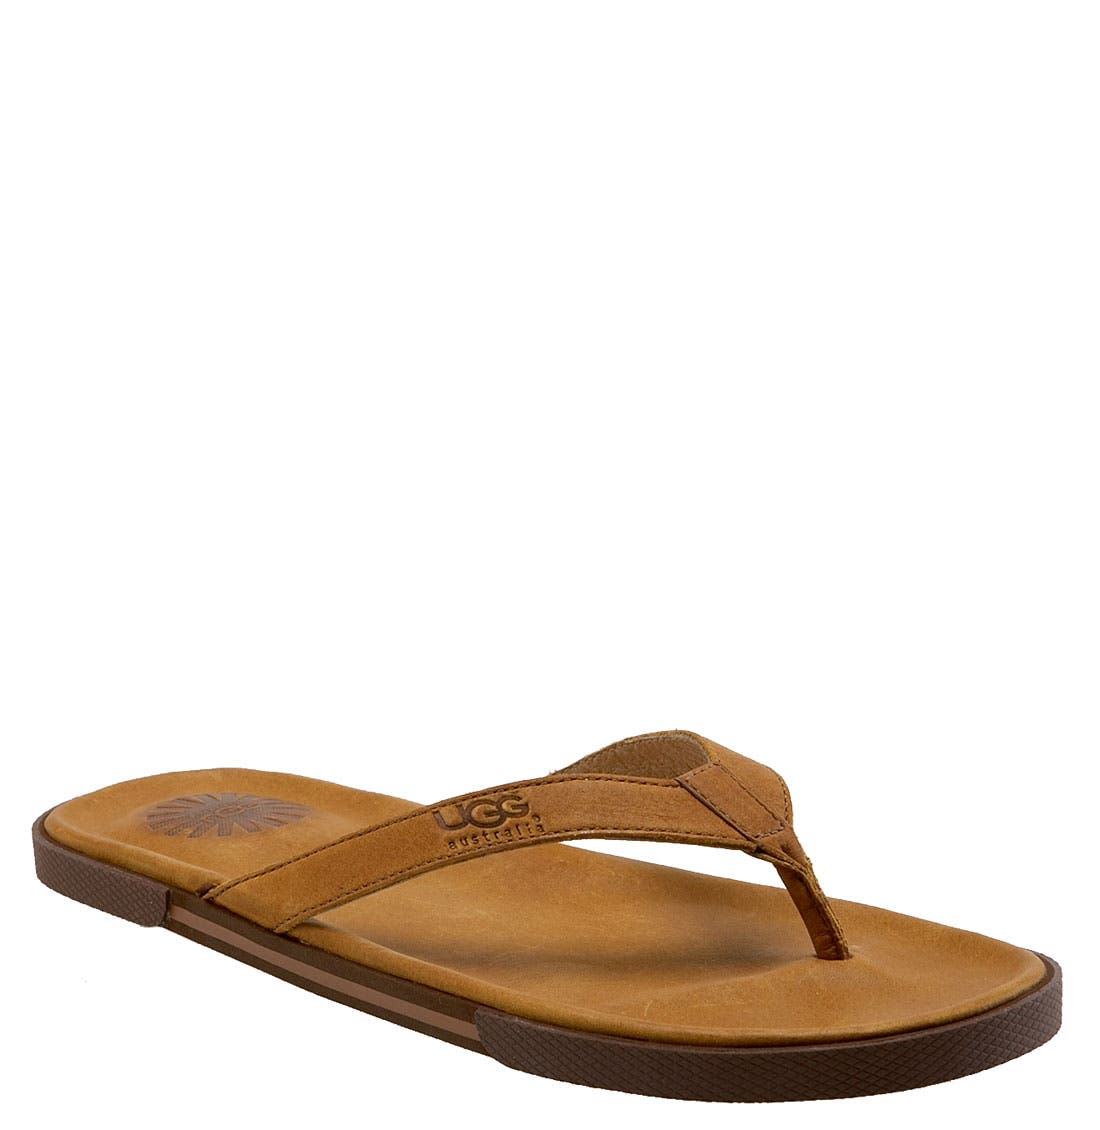 Alternate Image 1 Selected - UGG® Australia 'Bennison' Flip Flop (Men)